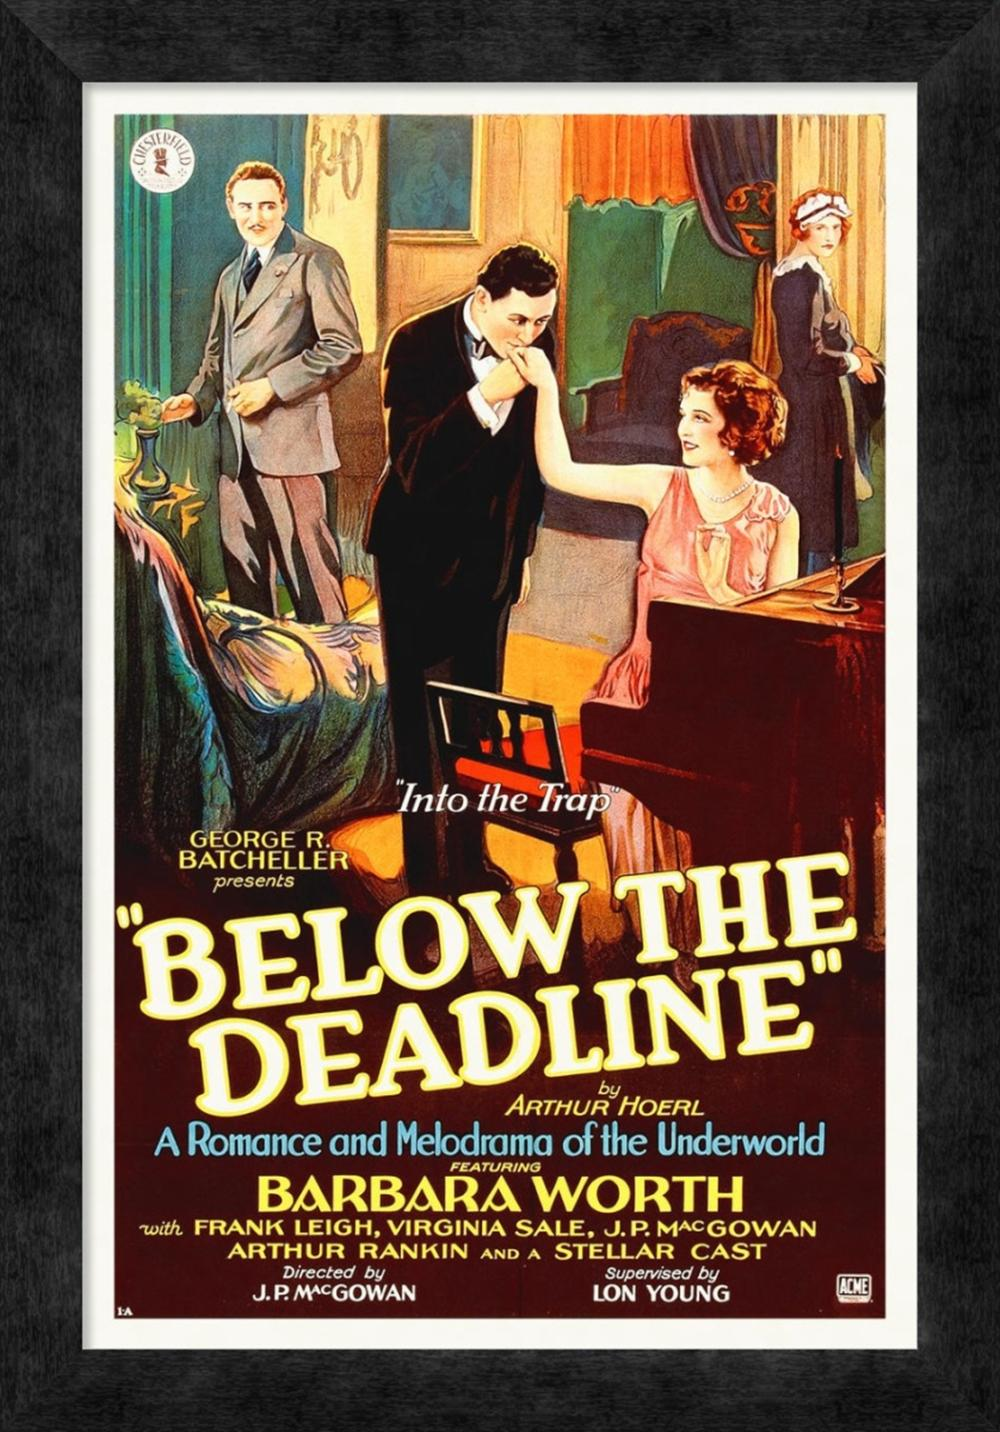 BELOW THE DEADLINE WITH BARBARA WORTH, 1914